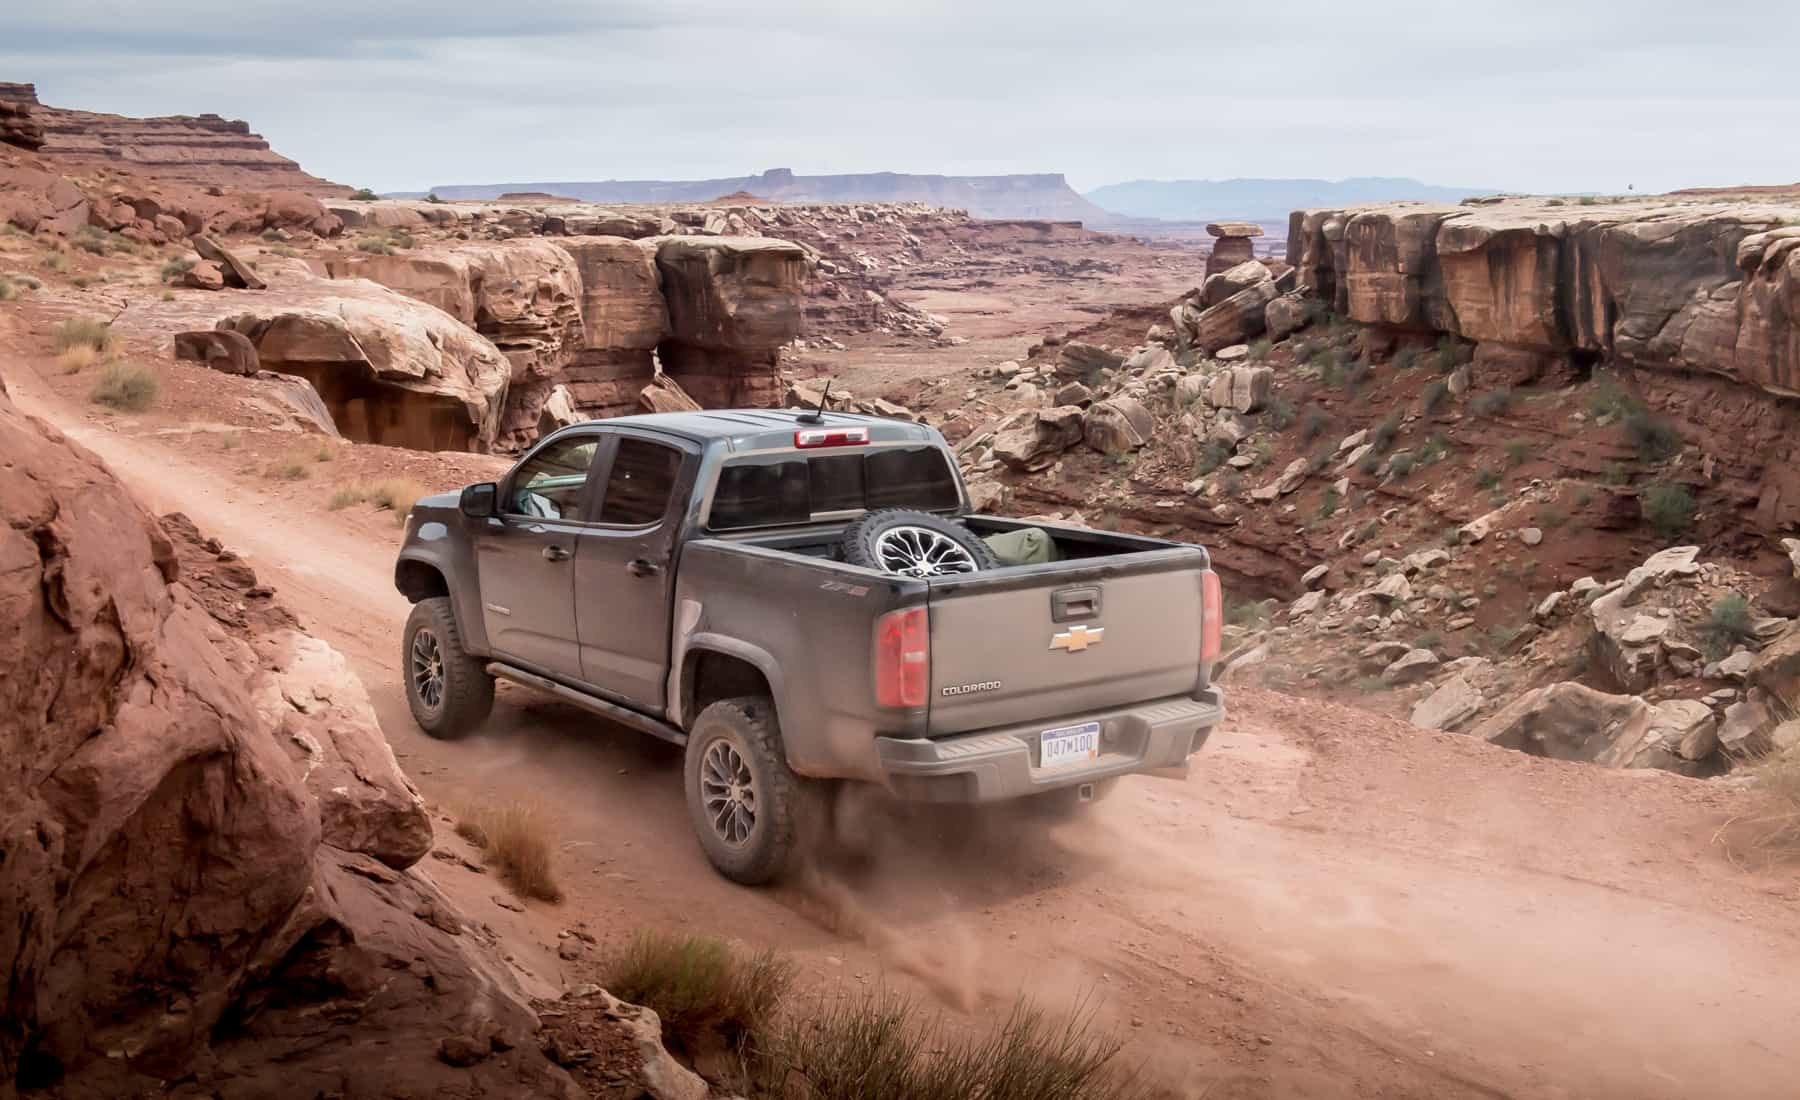 2017 Chevrolet Colorado ZR2 Crew Cab Diesel Test Drive Side And Rear View (Photo 4 of 16)